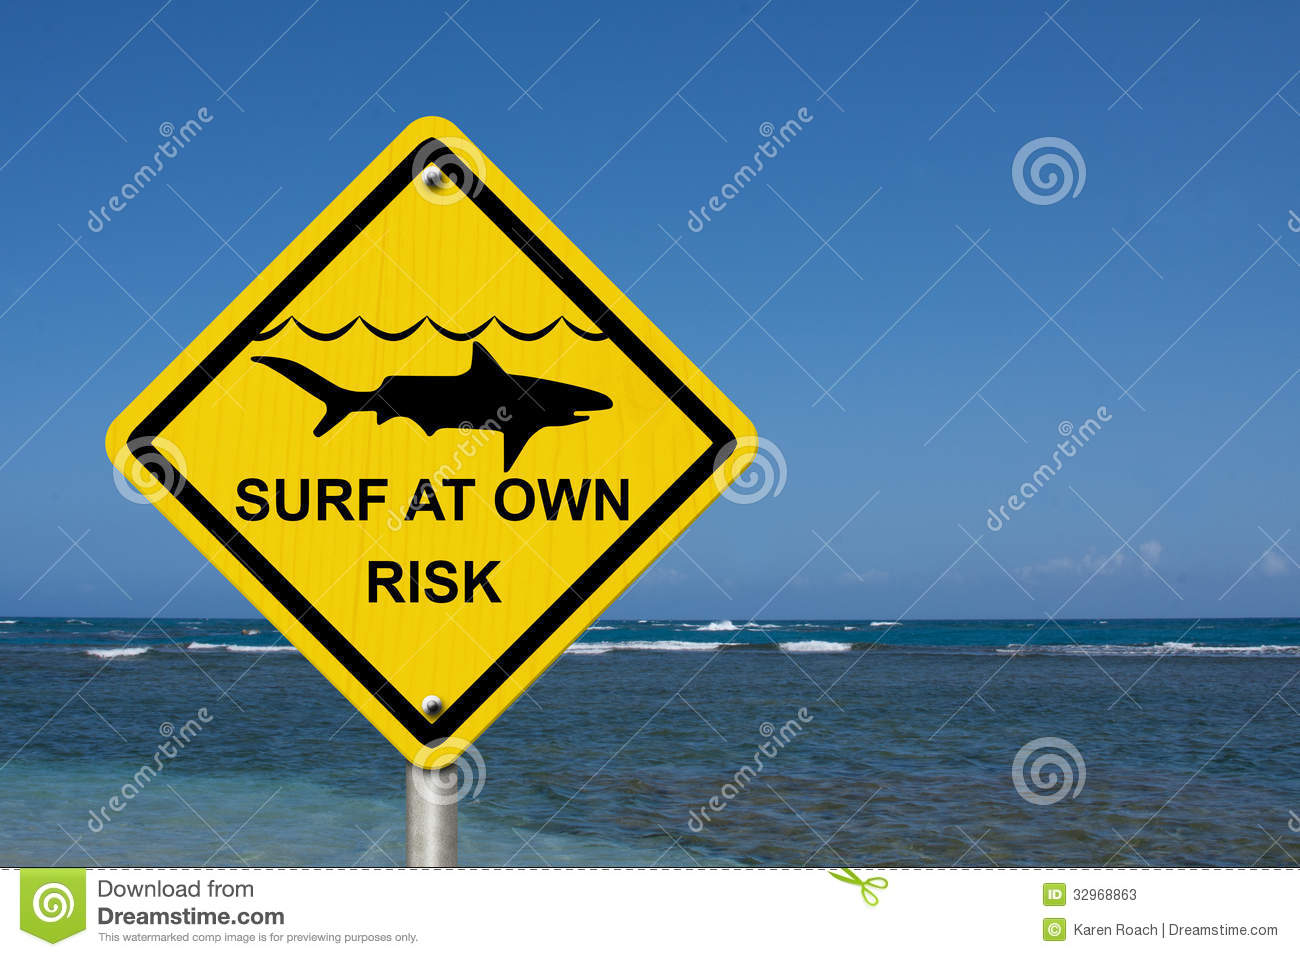 Use Caution When Surfing Because Sharks Are Present Stock